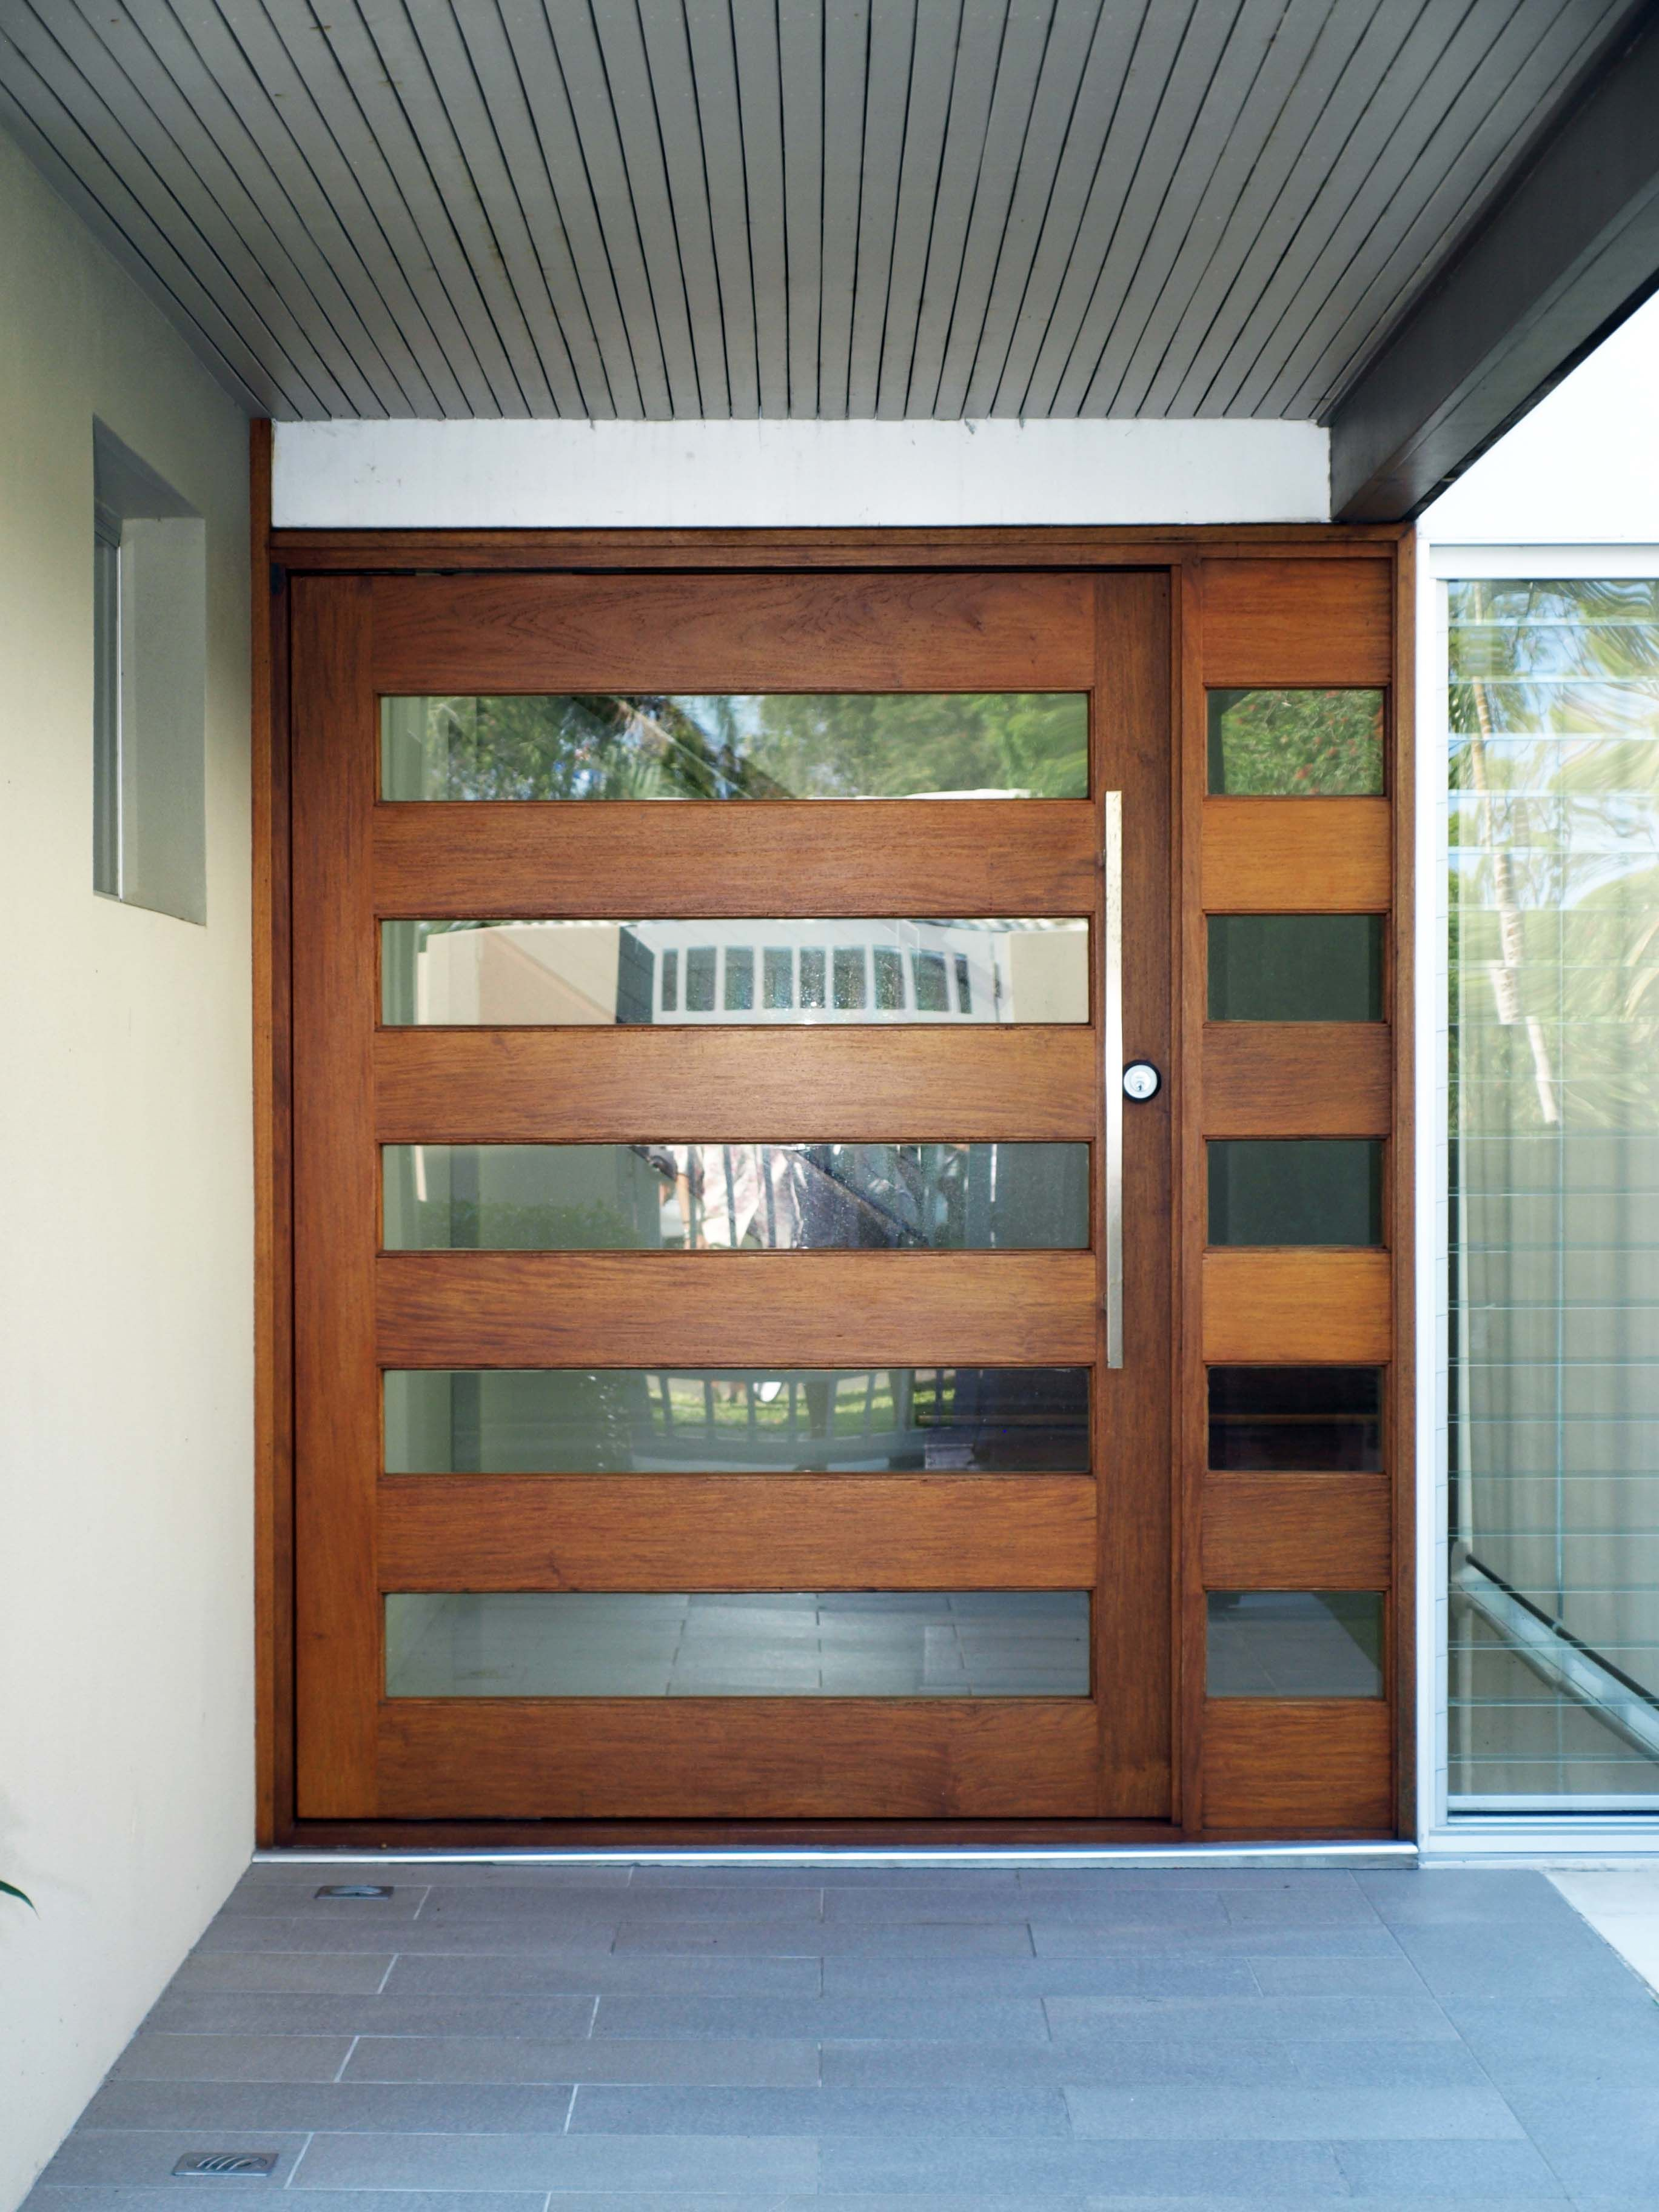 A beautiful door that sweeps the exterior through the entrance. & A beautiful door that sweeps the exterior through the entrance ... pezcame.com